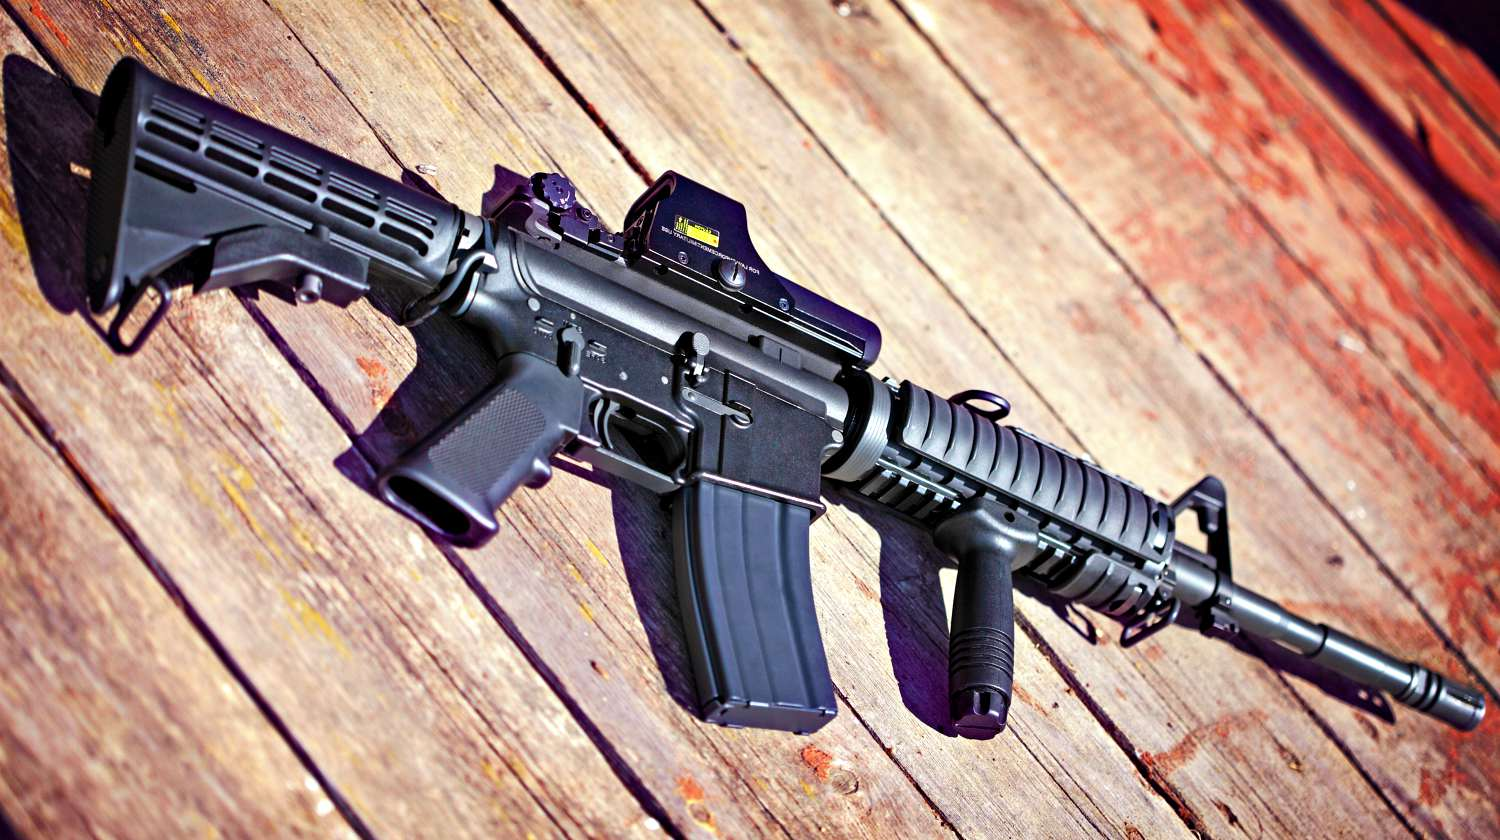 Feature | Rifle on a wooden surface | Gun Modifications | AR-15 Dos and Don'ts